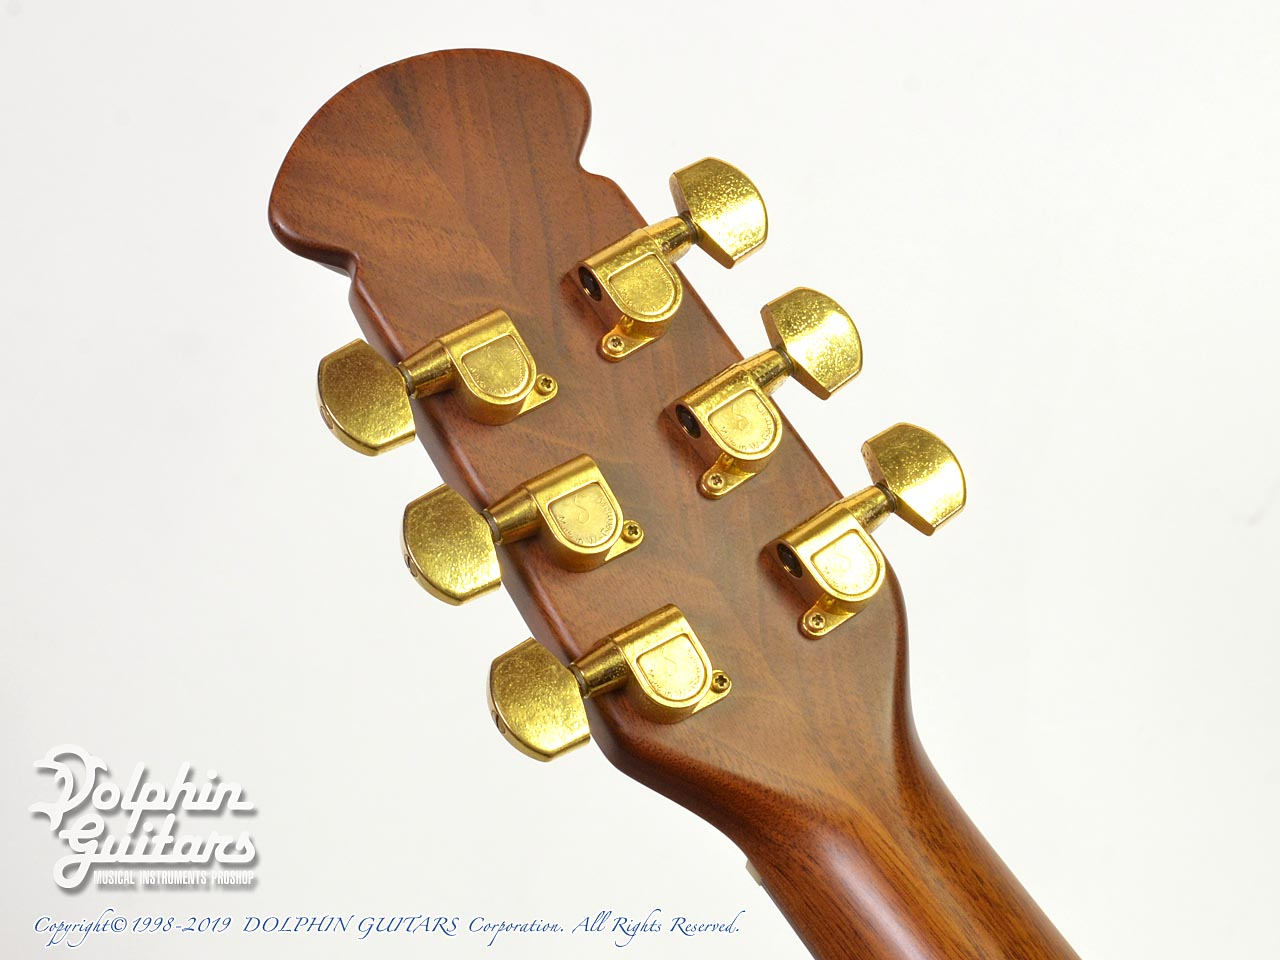 OVATION: Super Adamas 1587-2 (7)